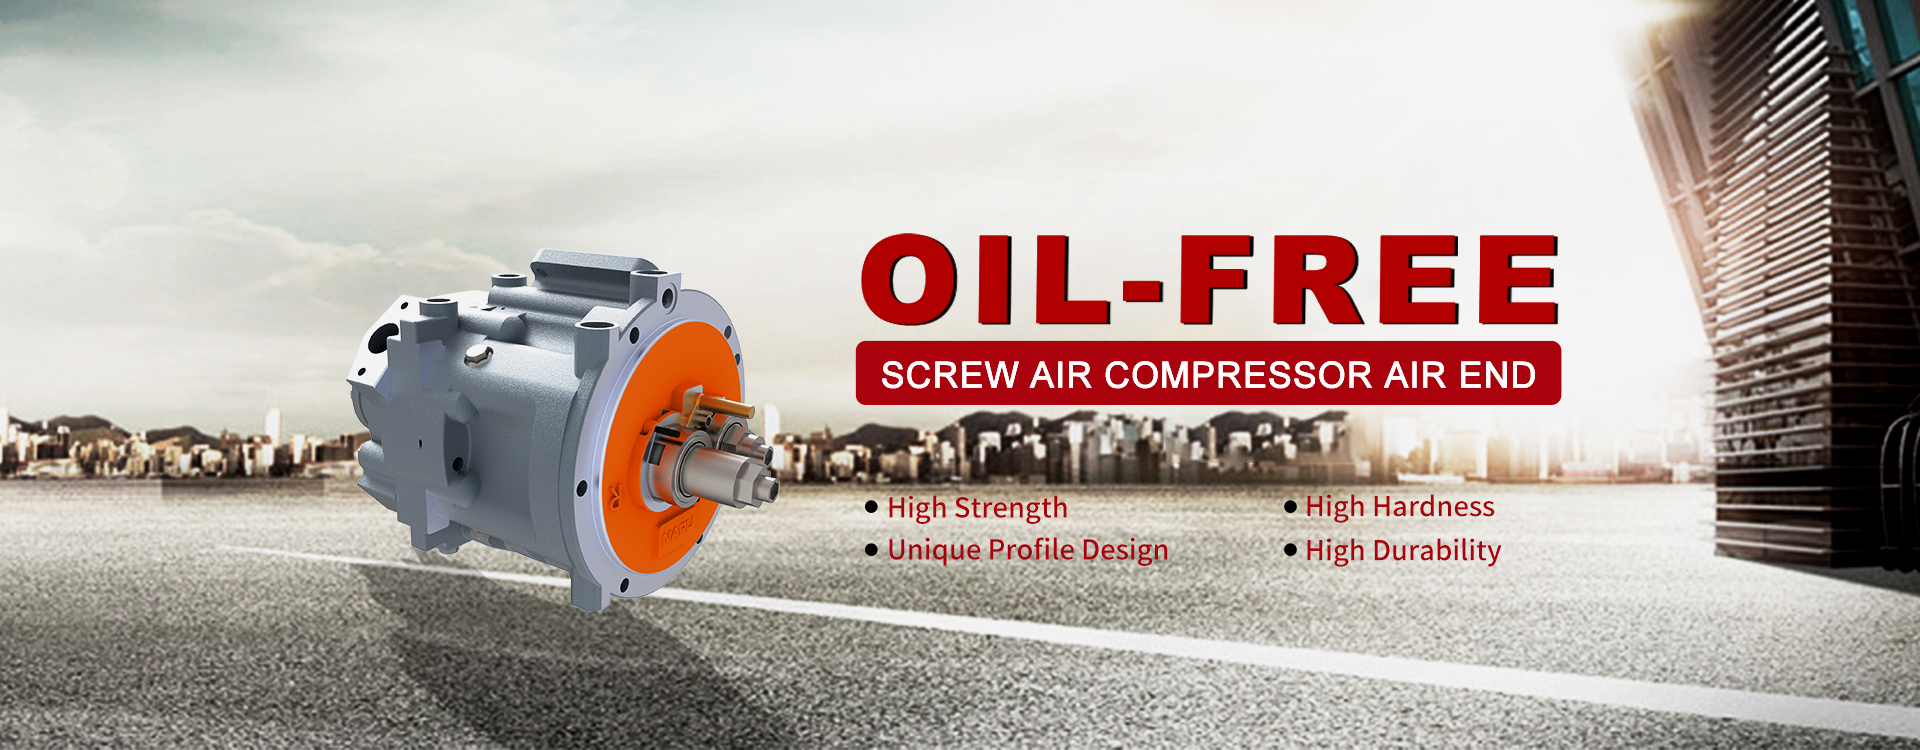 Oil Free Screw Air Compressor Air End